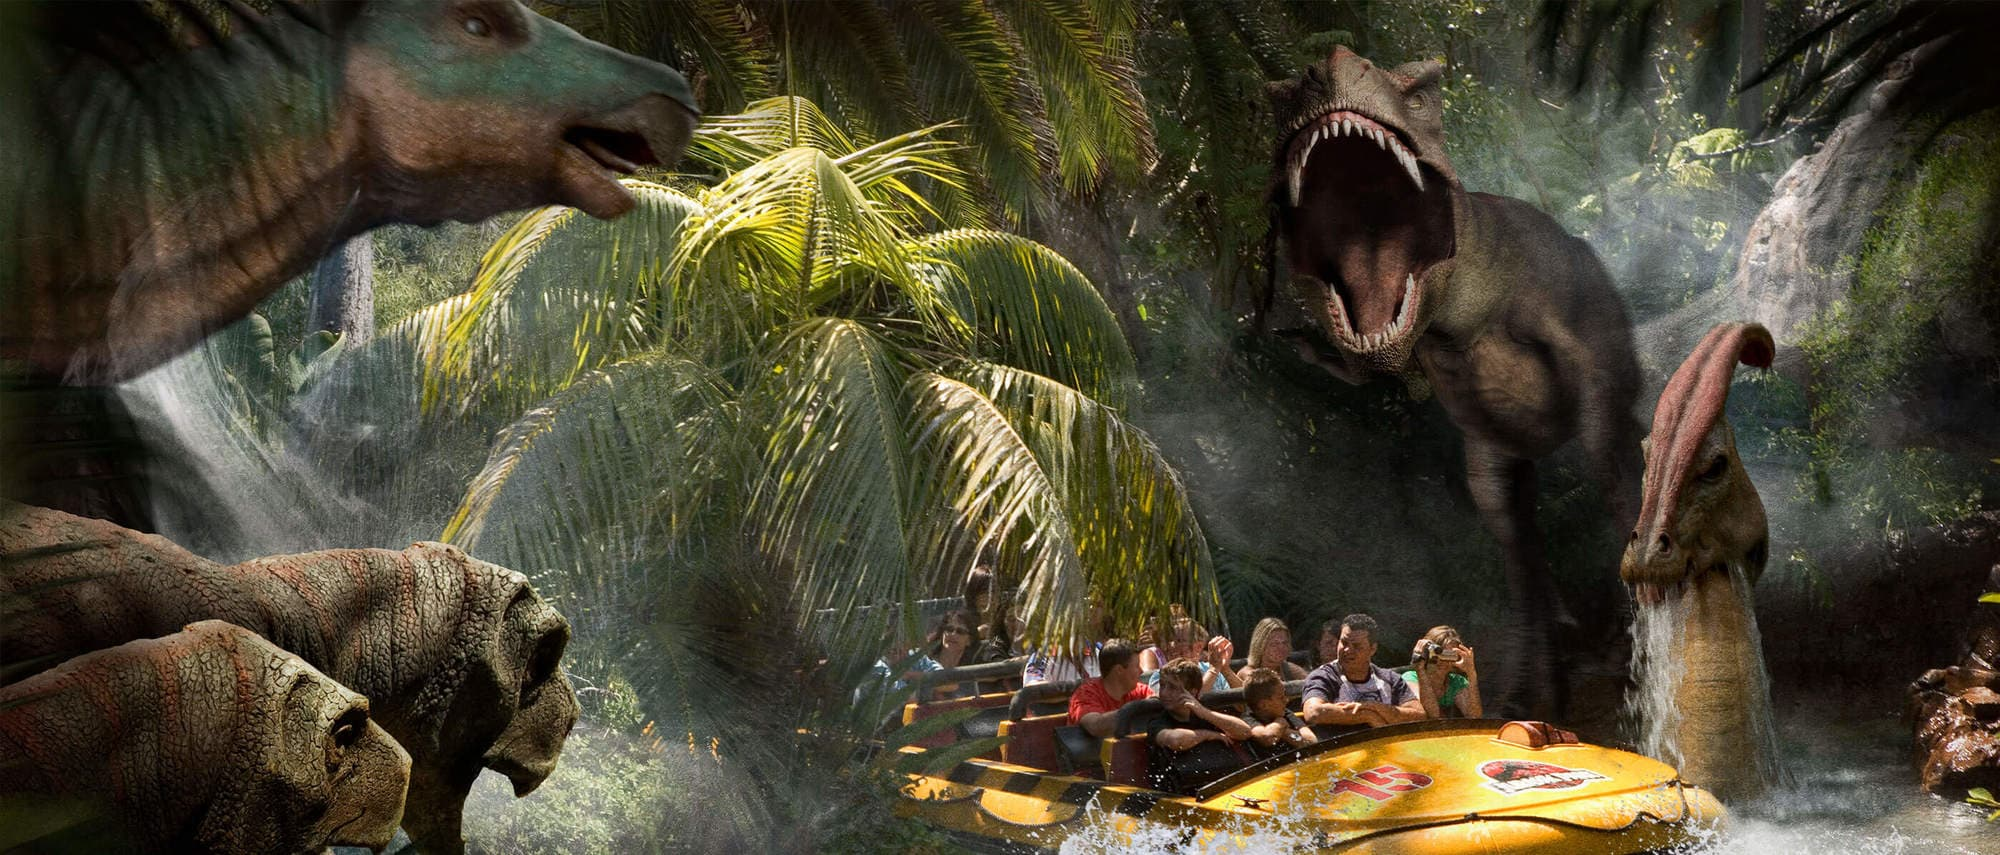 Jurassic Park – The Ride uses 1.5 million gallons of water!